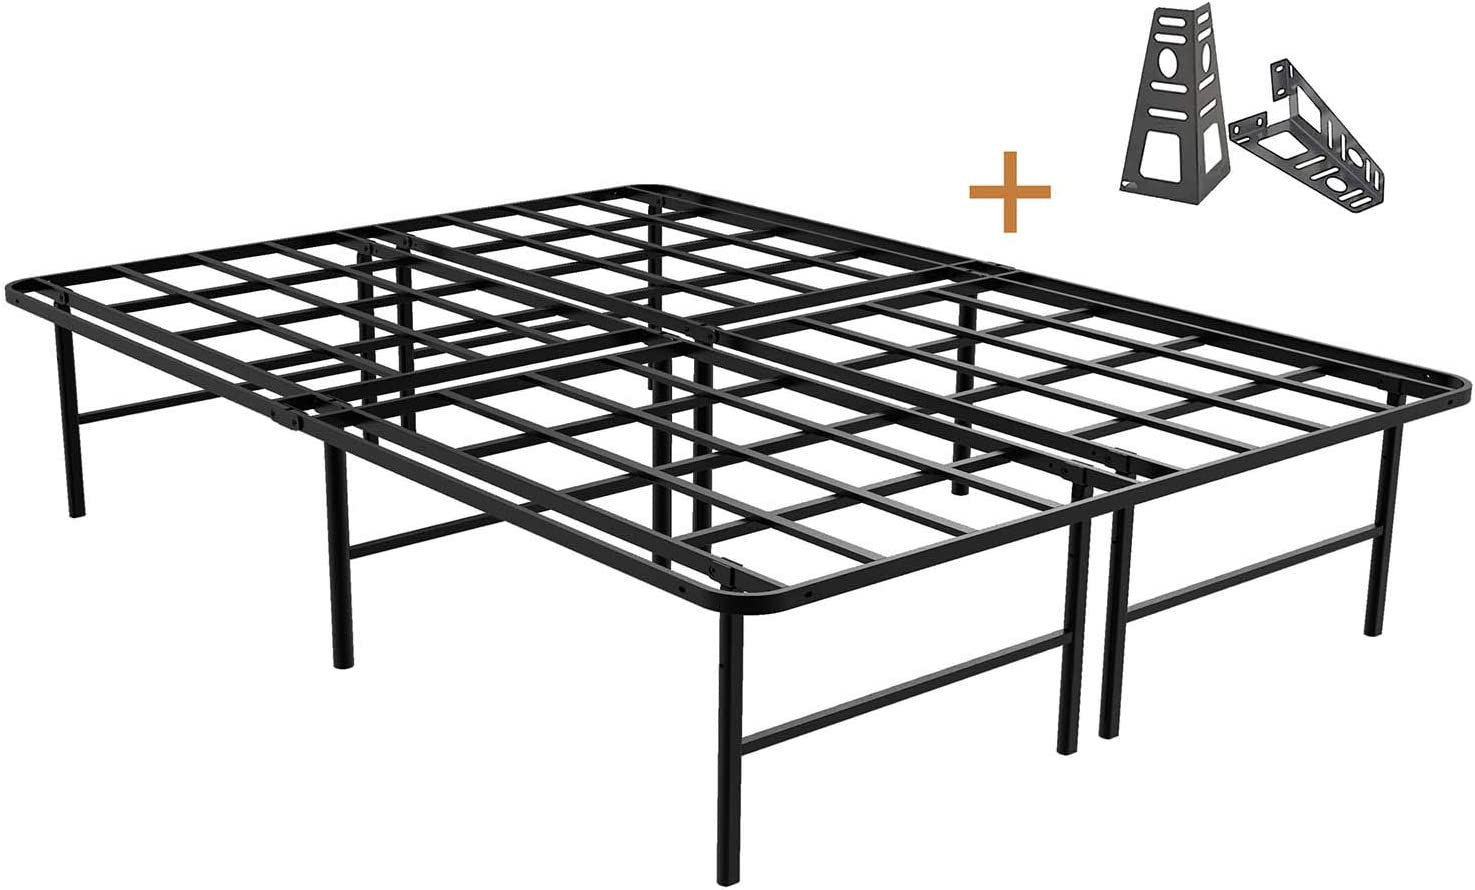 ZIYOO 16 Inch Platform Bed Frame Base, Mattress Foundation, Box Spring Replacement, Quiet Noise-Free, Headboard-Bracket Included, Queen